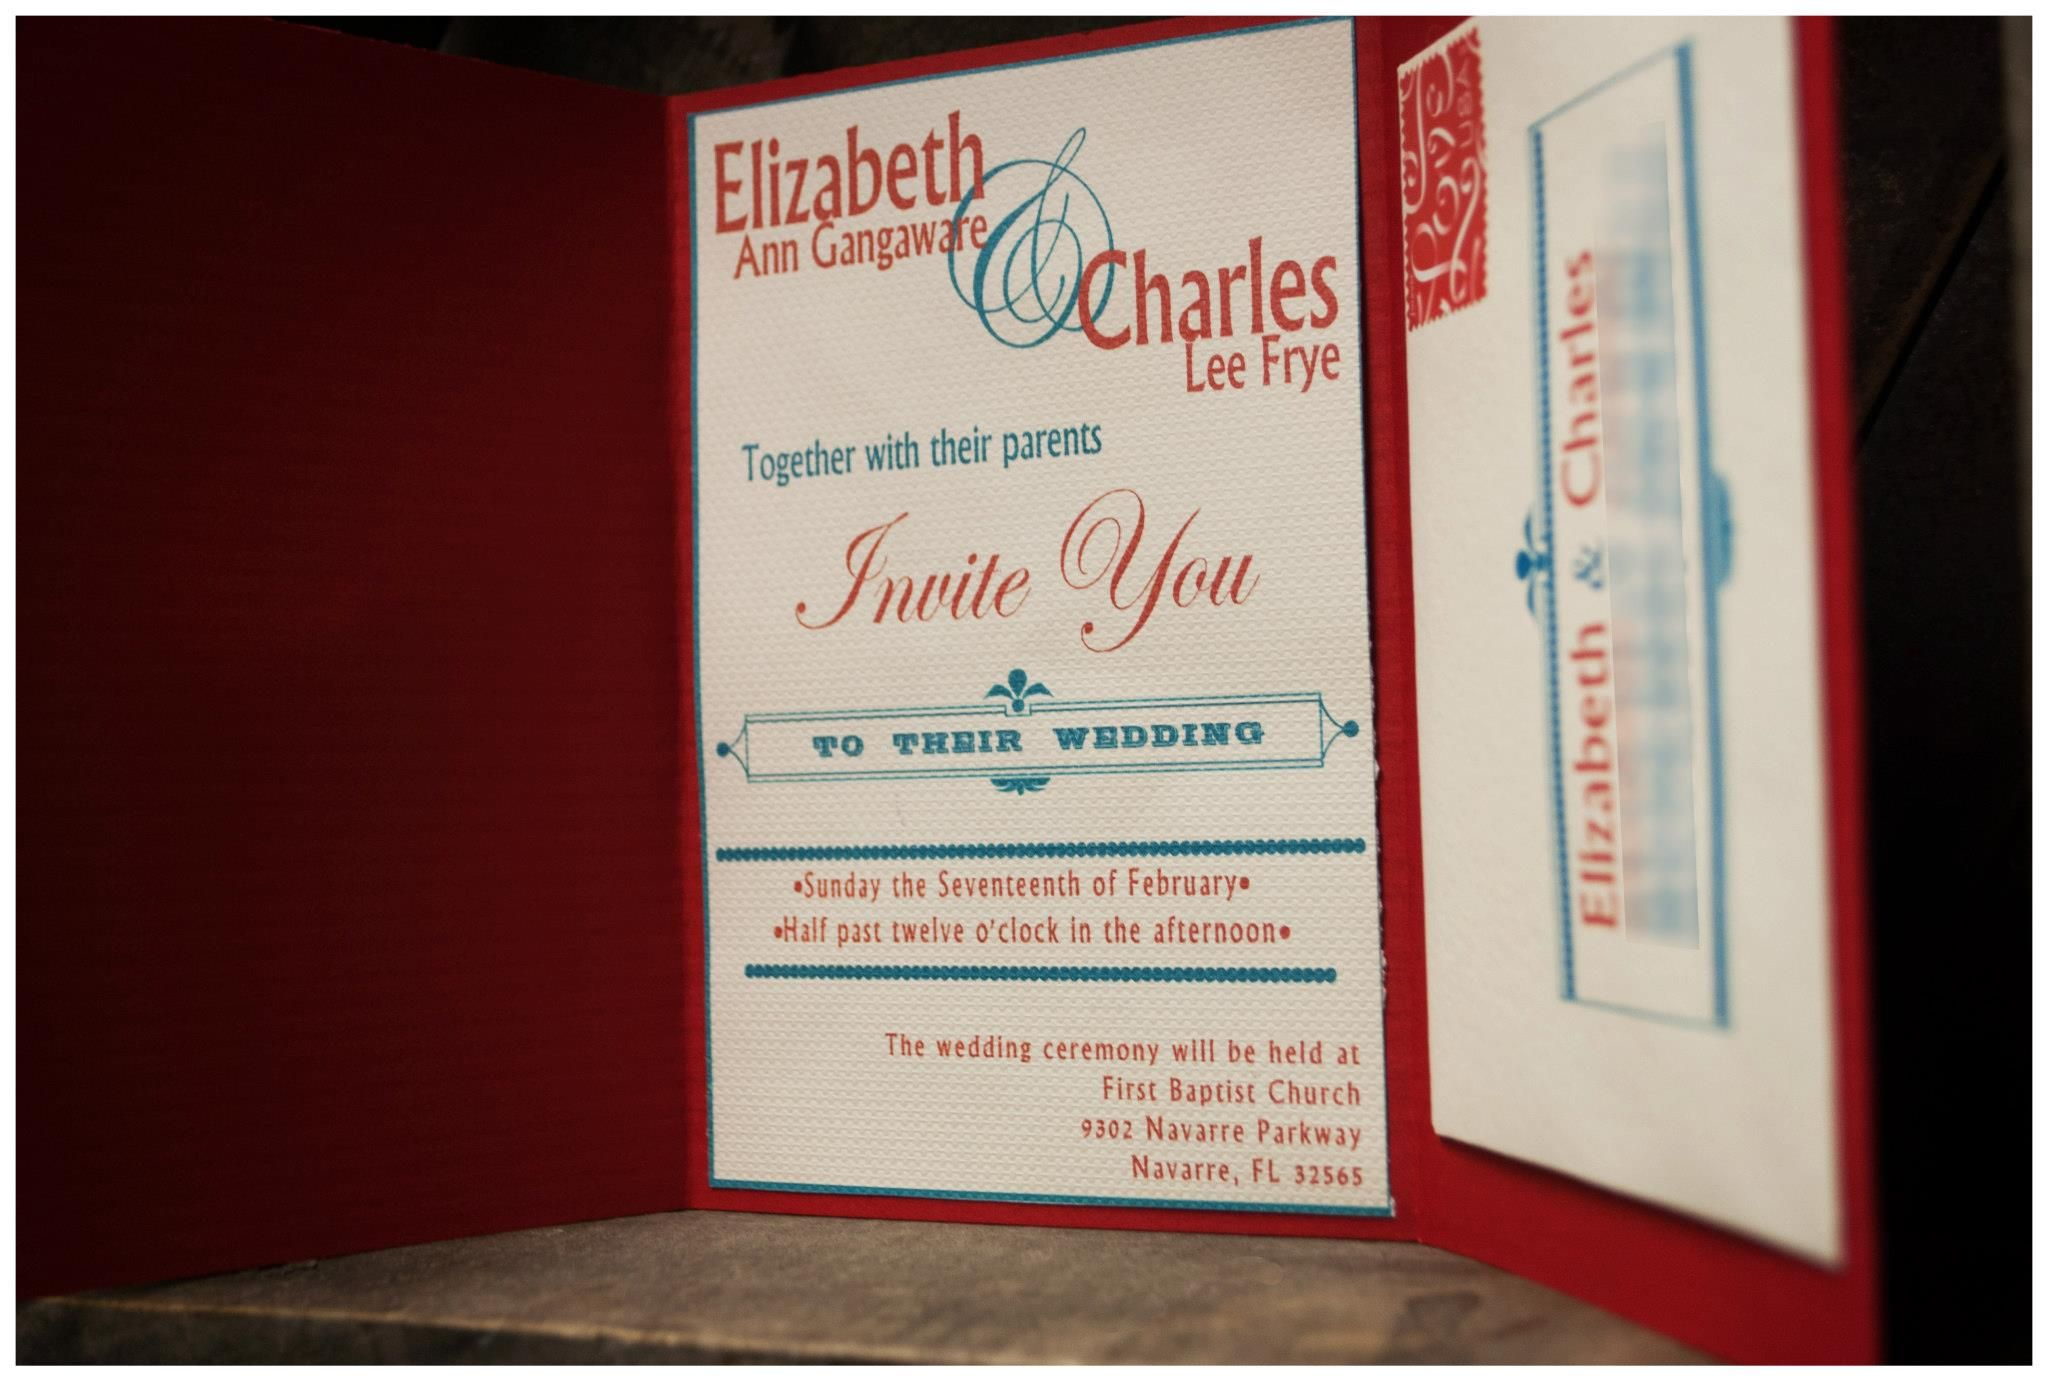 17 Best images about Invitations and Event Planning on Pinterest ...